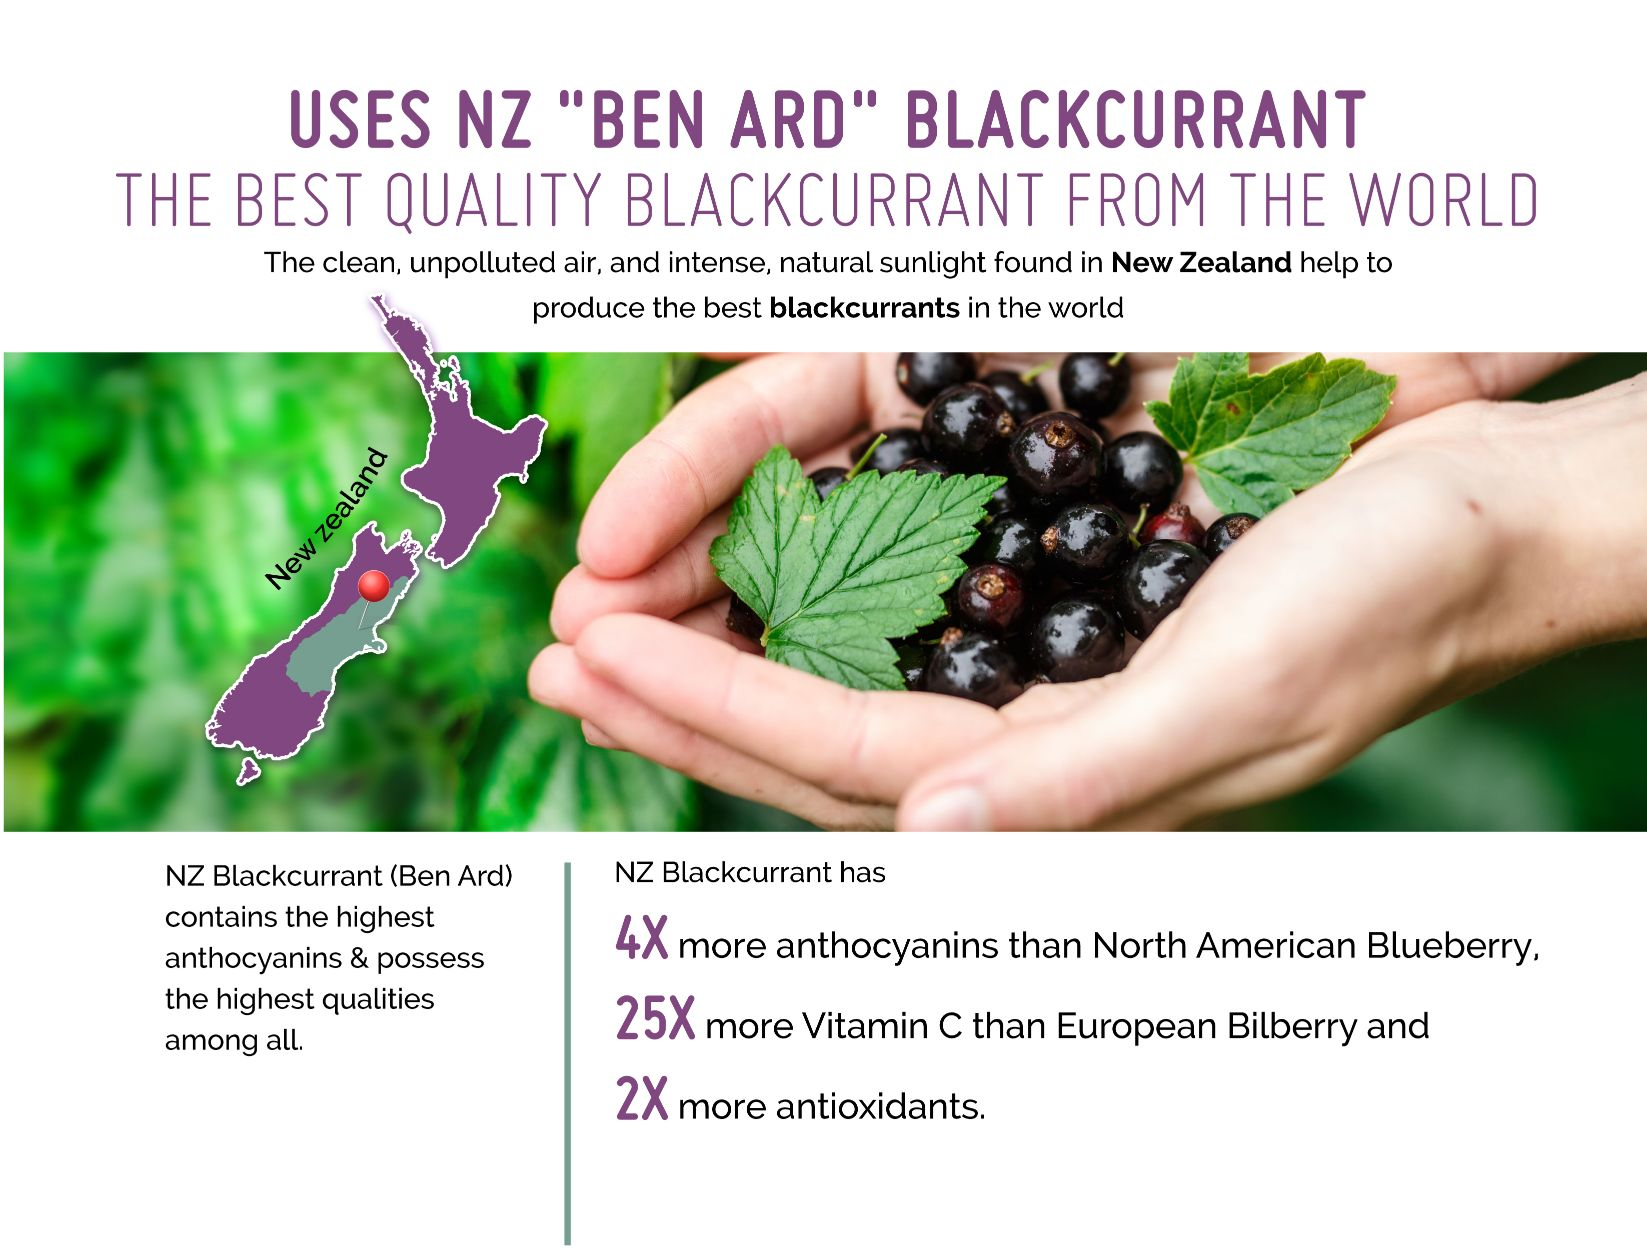 New Zealand Ben Ard Blackcurrant Extract